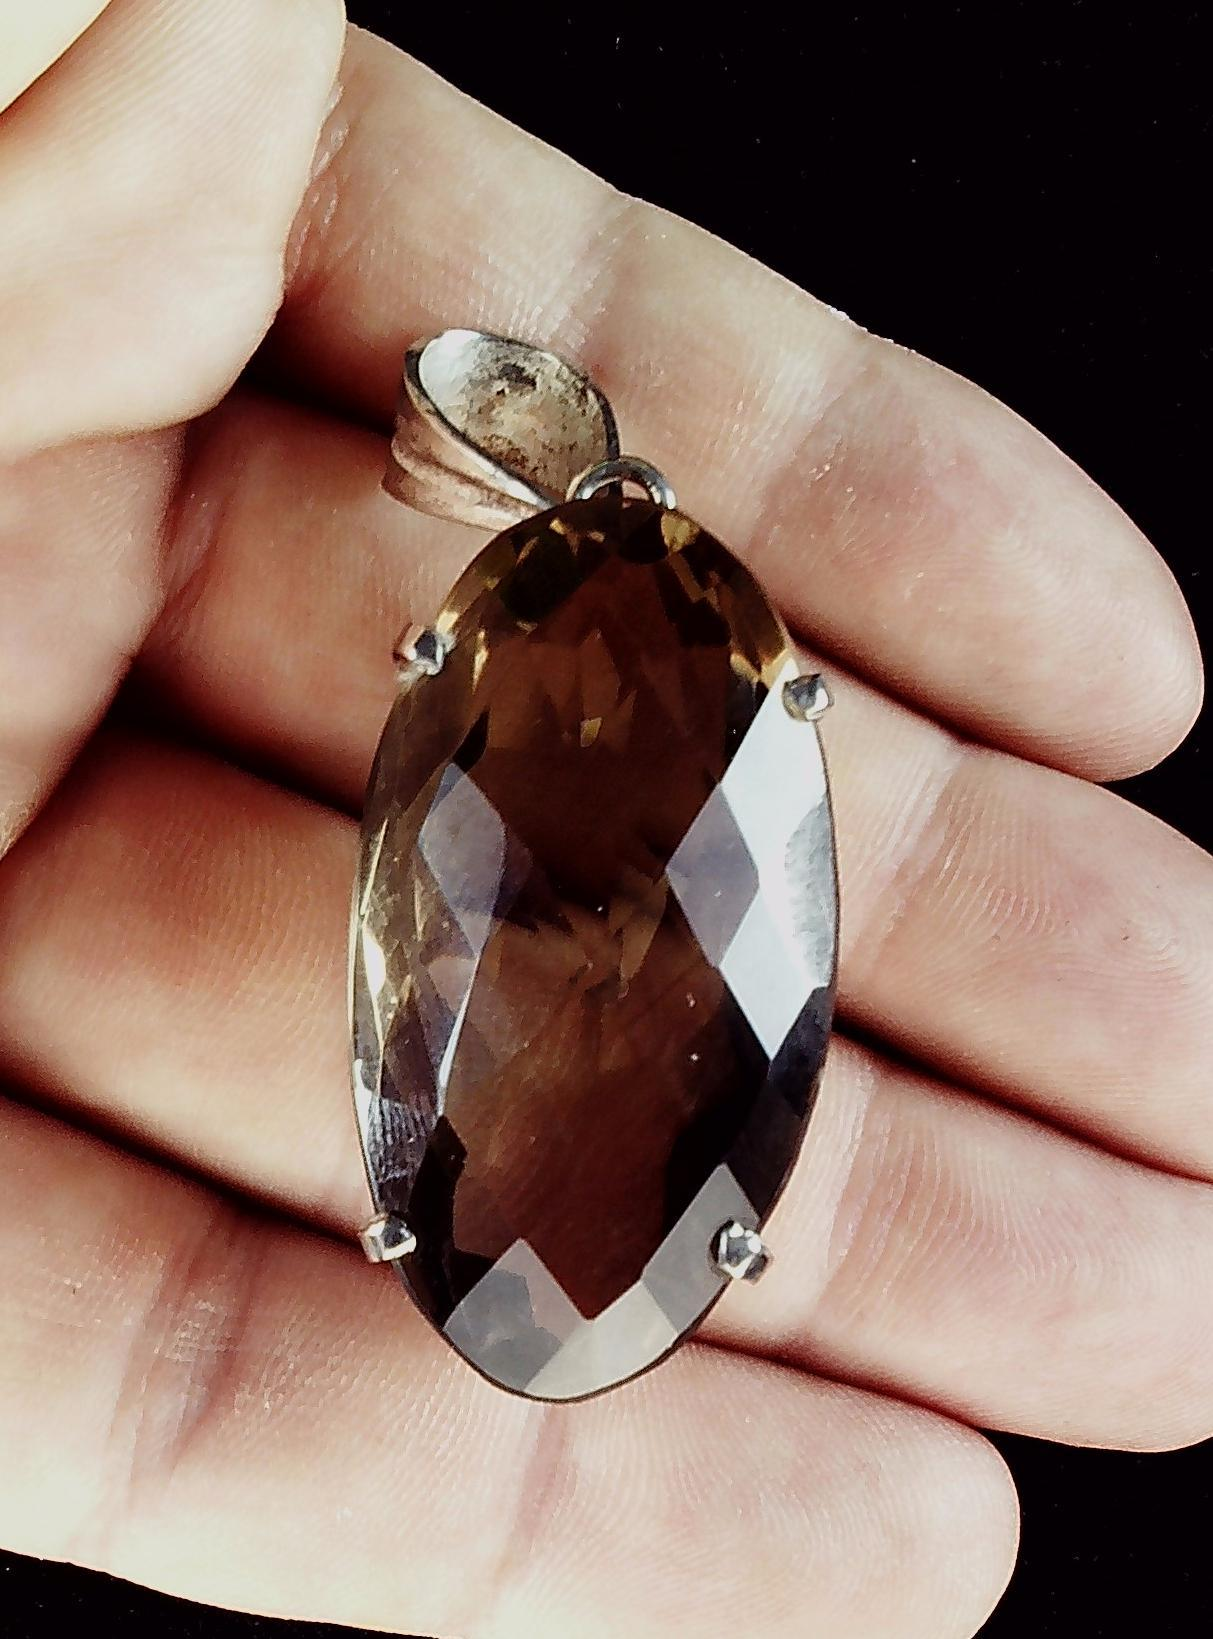 Quartz Smokey solitaire in sterling pendant 42mm x 22mm